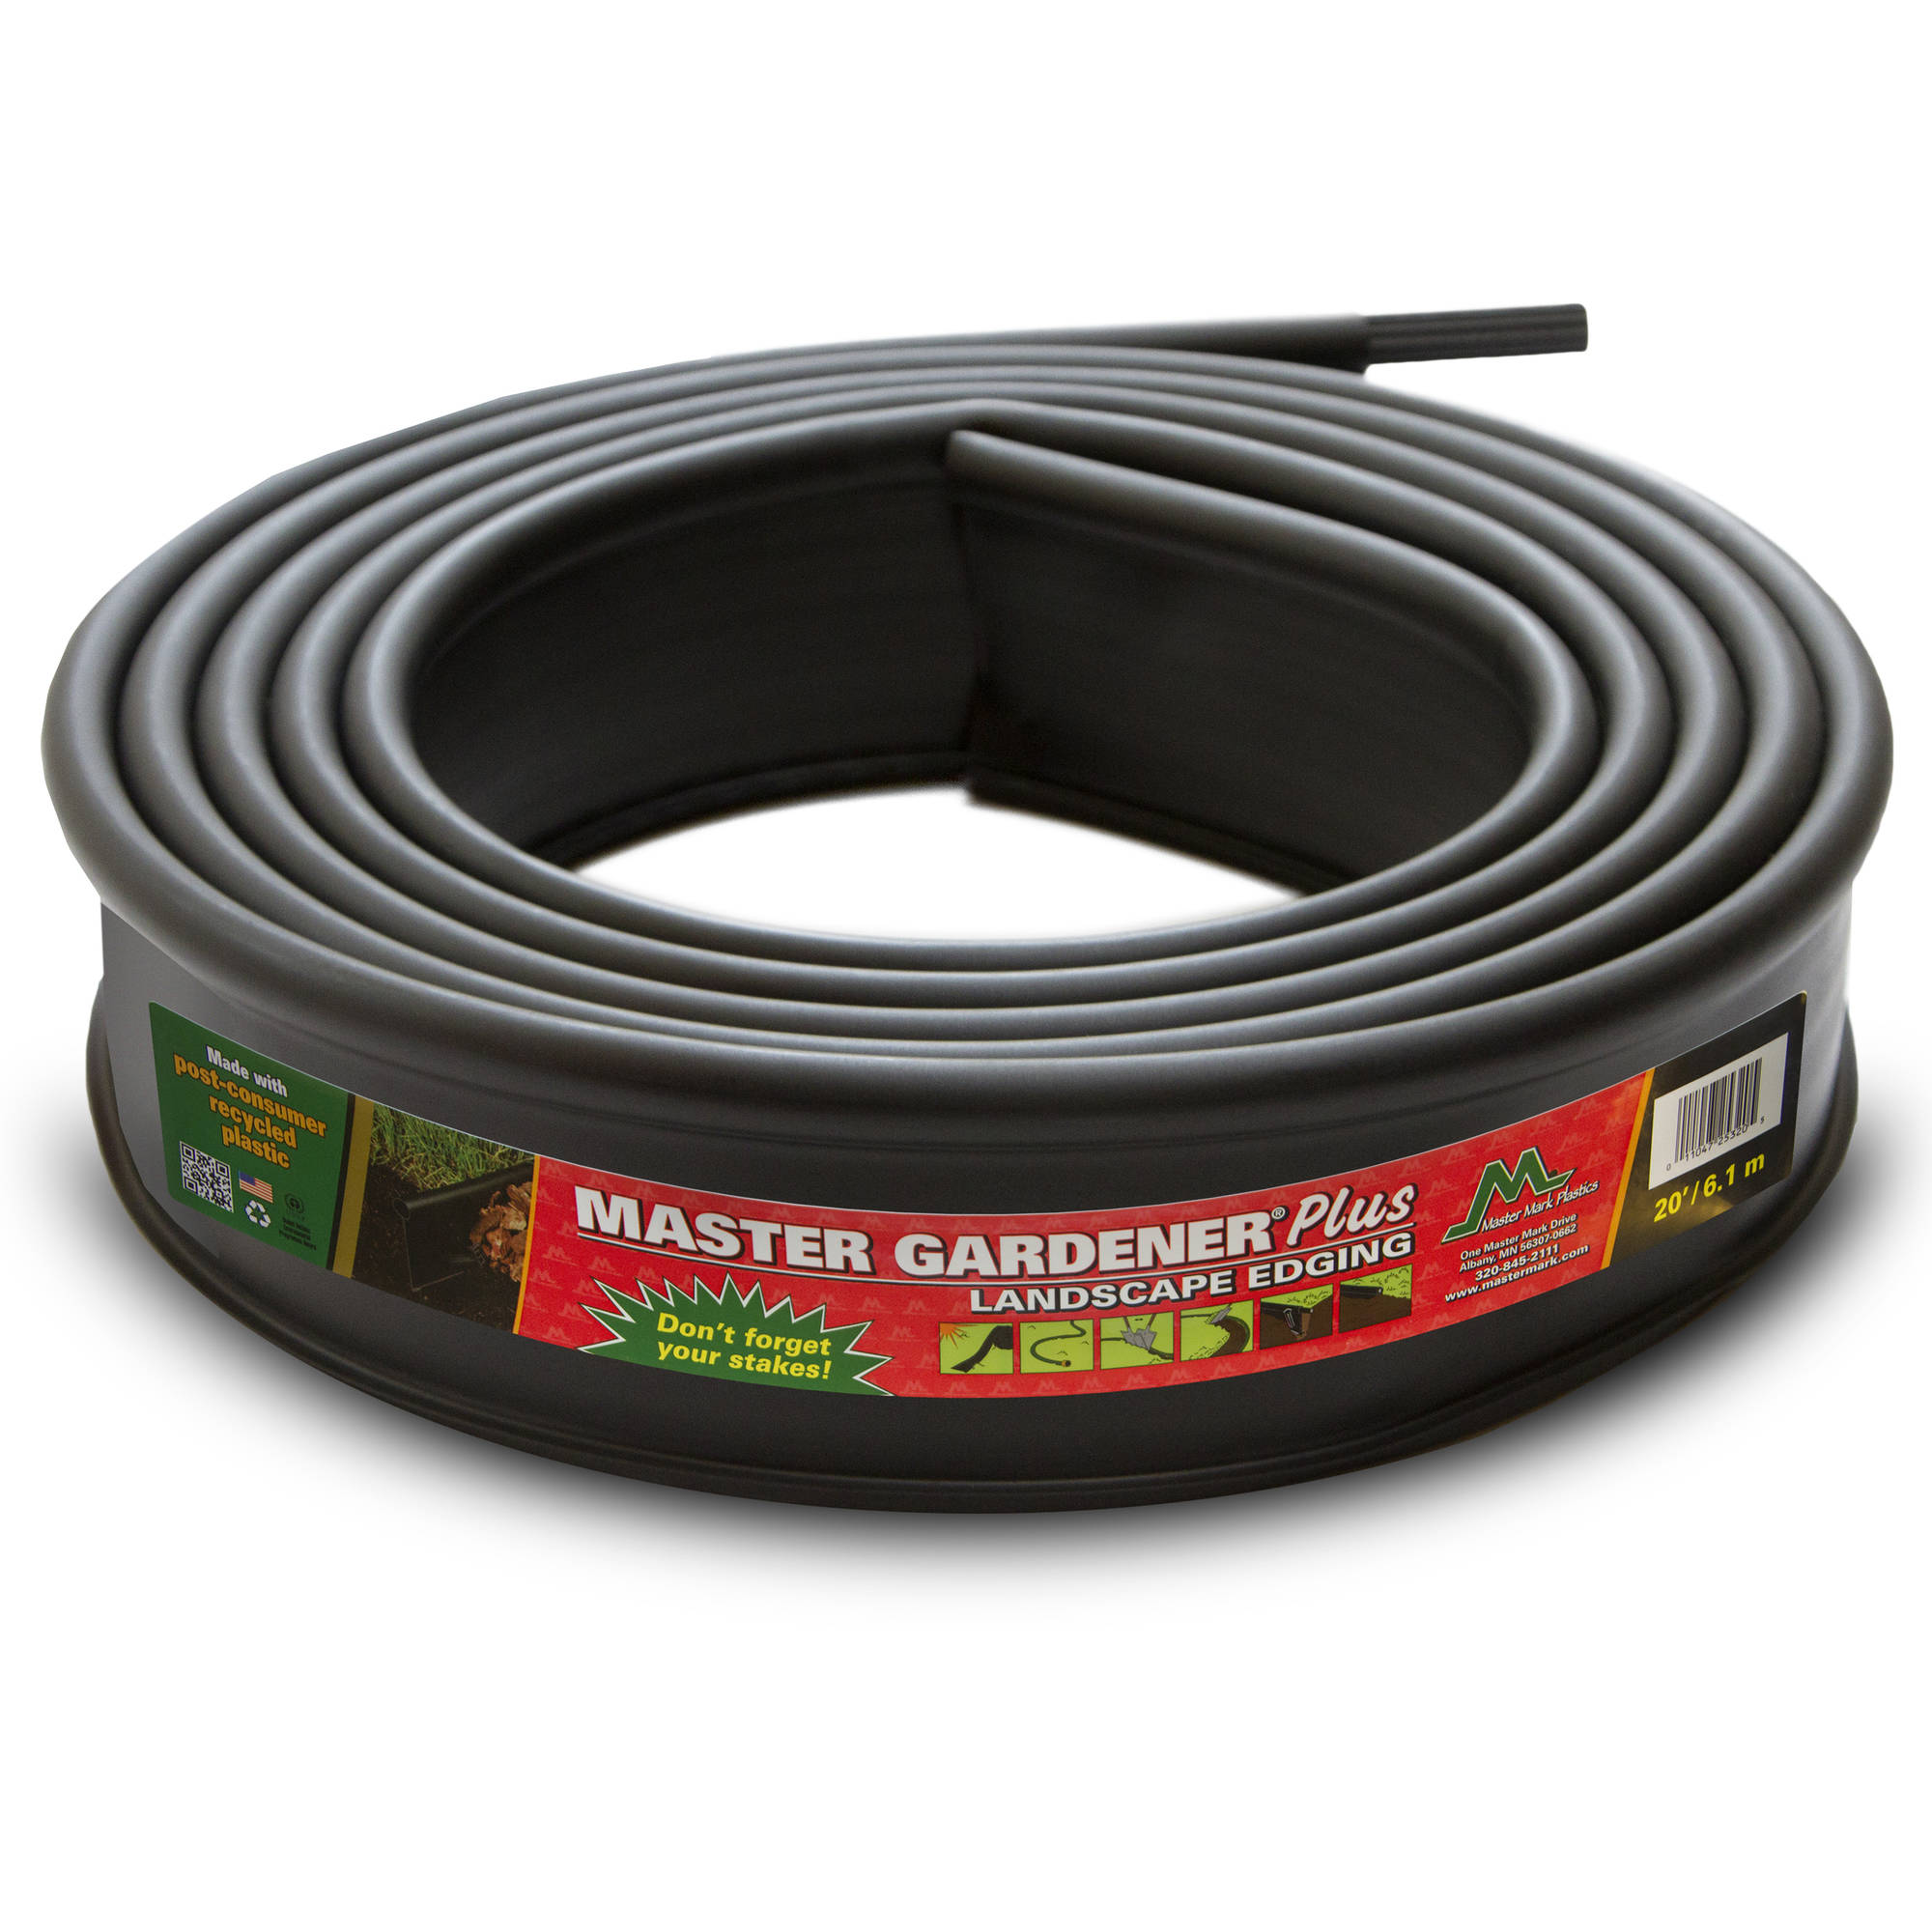 Master Gardener Plus Edging, 20' with 5 Stakes, Includes 1 Coupler